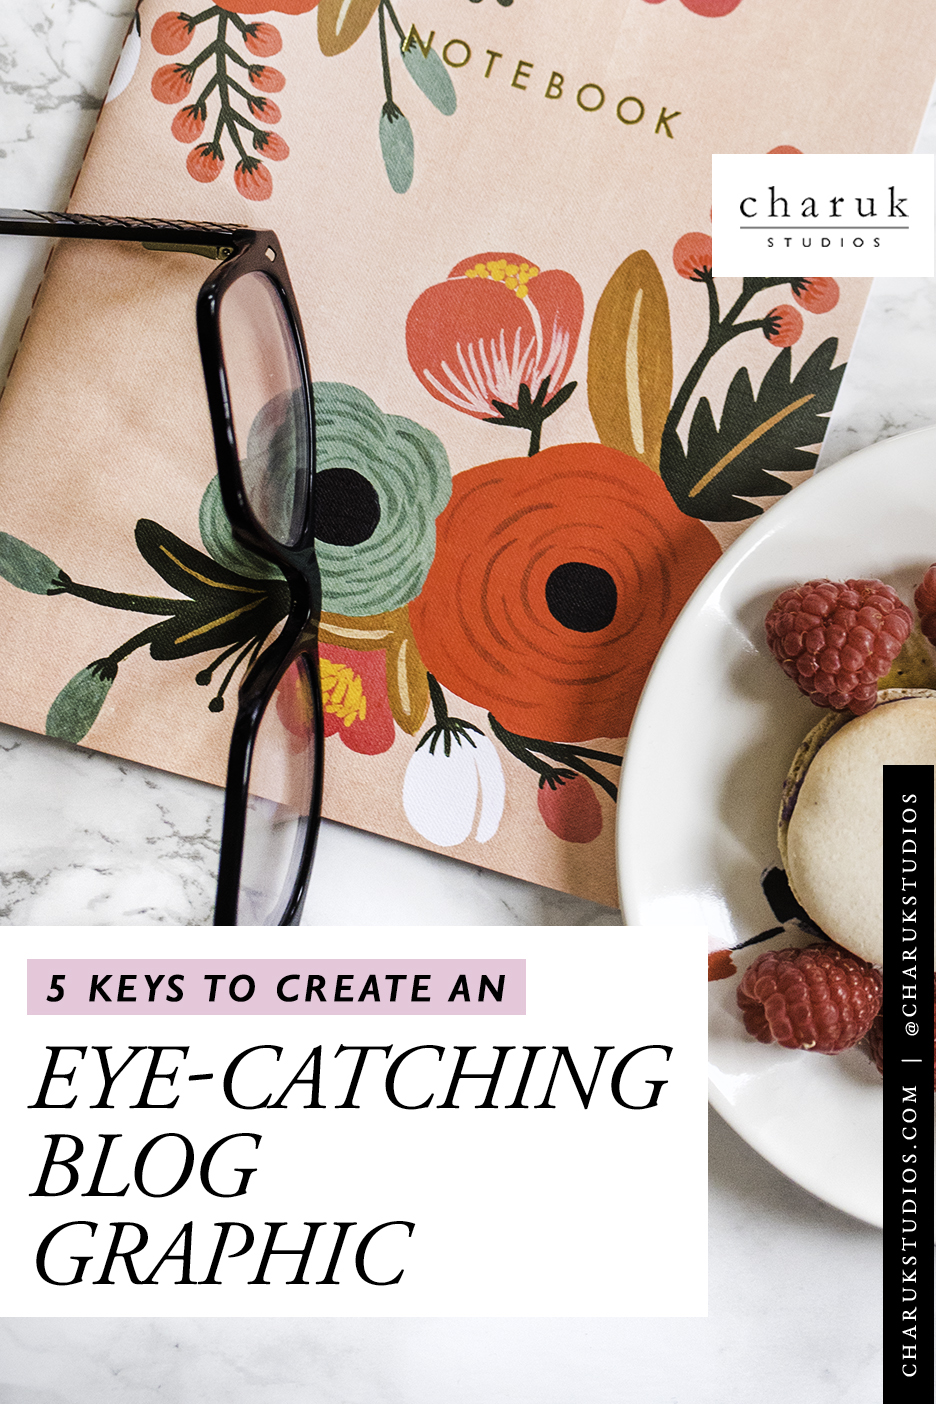 5 Keys to create an eye-catching blog graphic by Charuk Studios